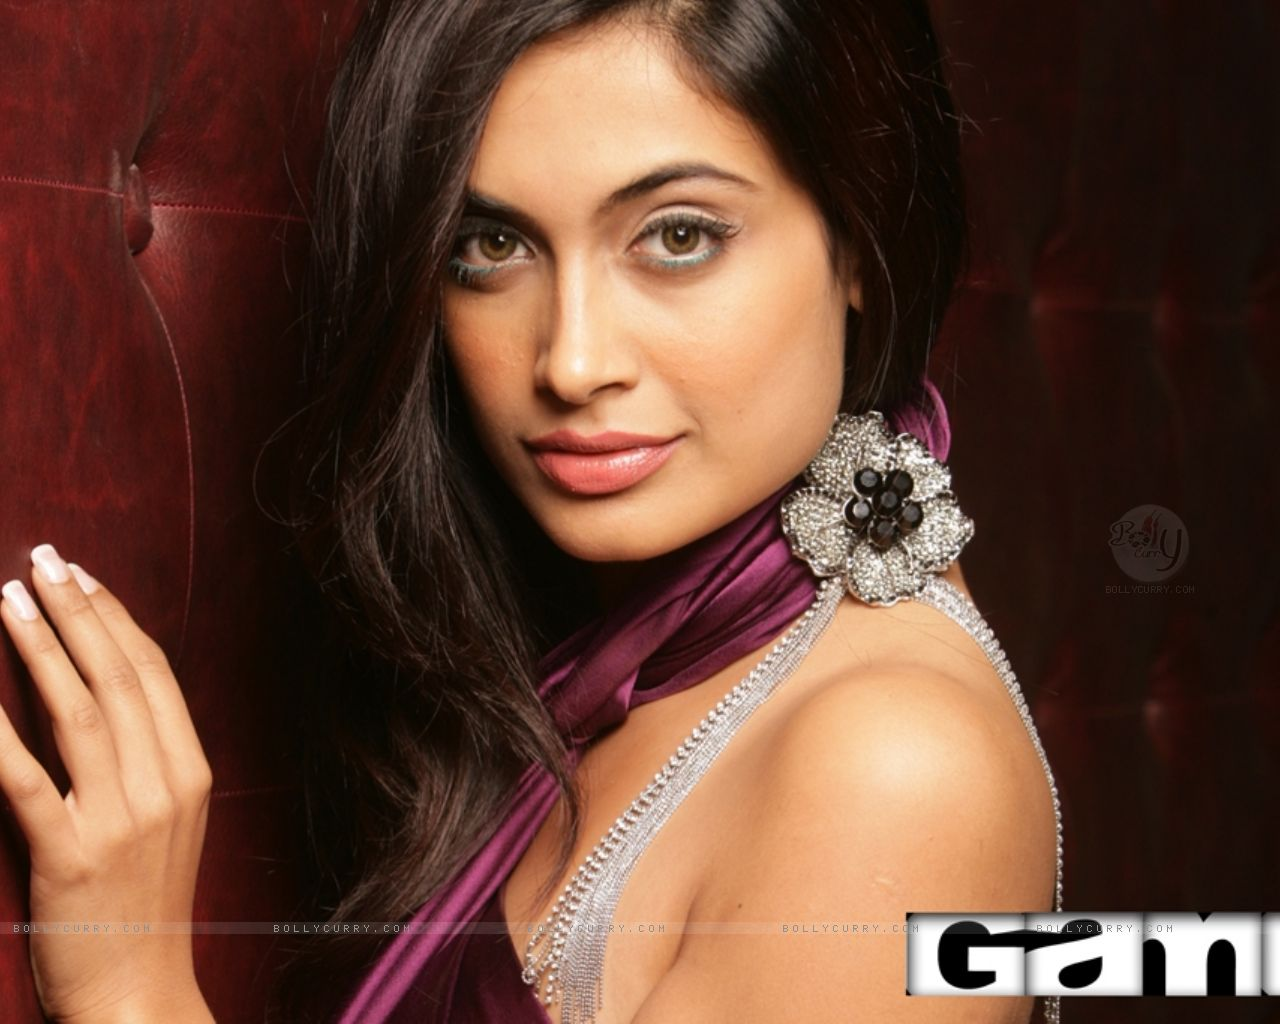 Bollywood Acterss Images Sara Jane Dias Images